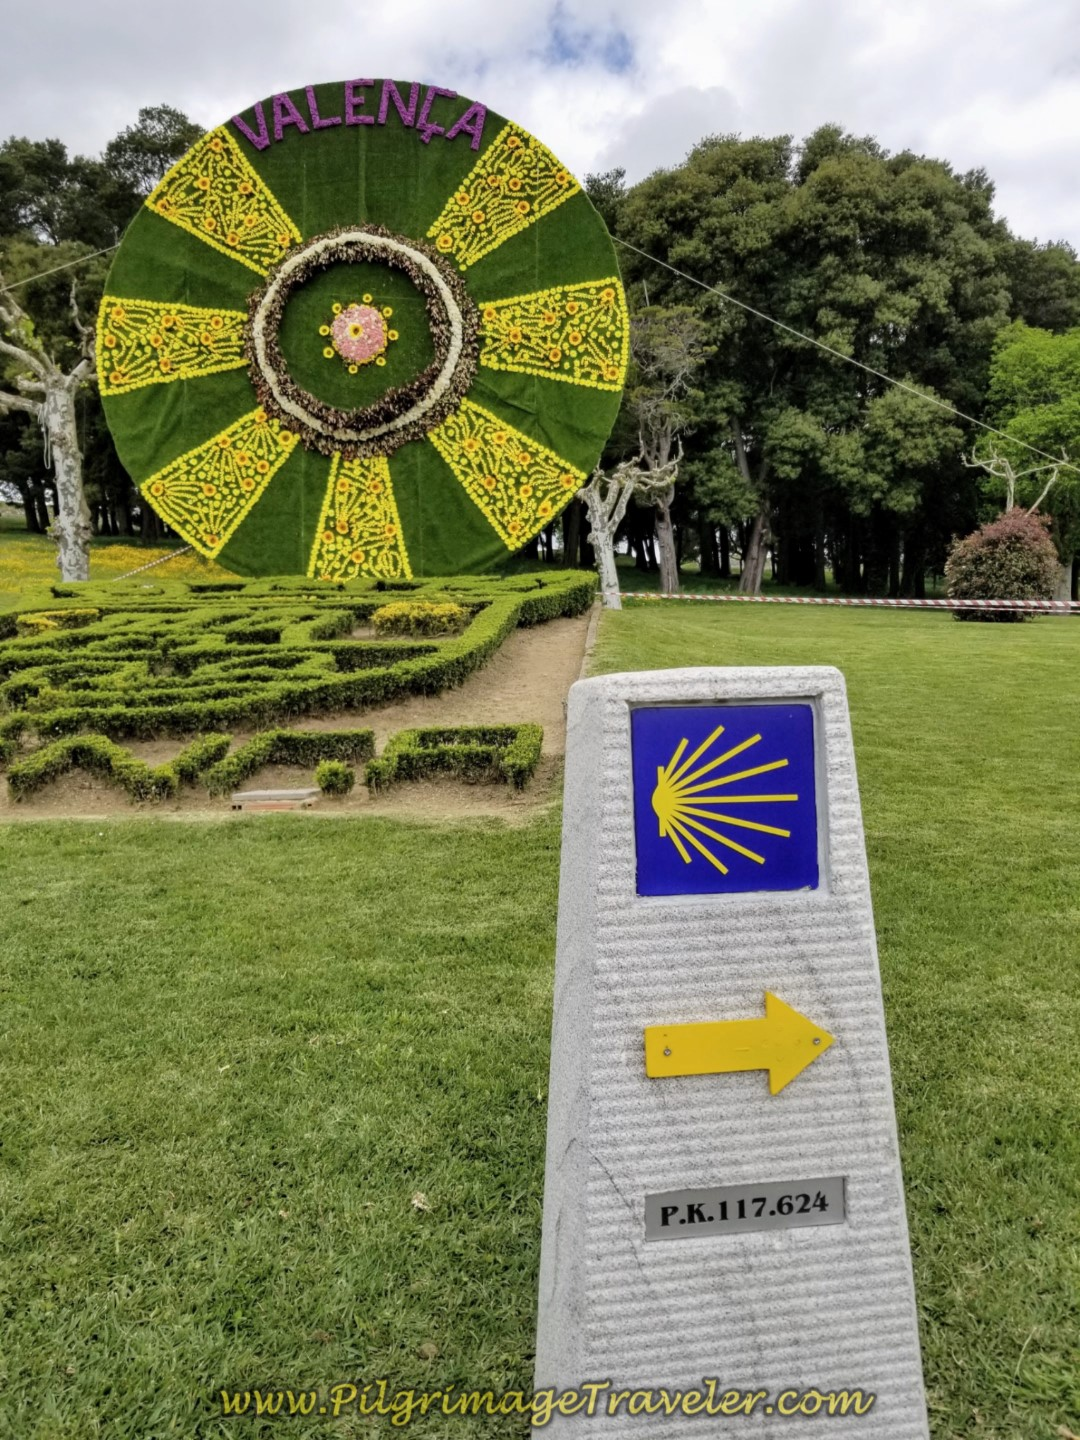 117 Km to Santiago, and Valença Flower Wheel on day nineteen on the Central Route of the Portuguese Camino